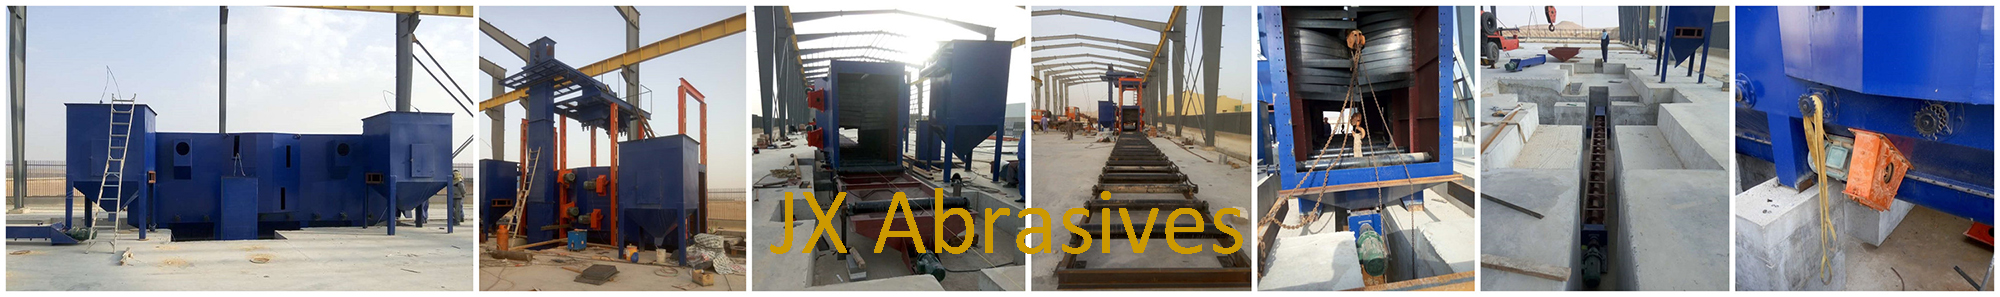 Shot Blasting Machine with Hoist & Roller Conveyor Systems in Saudi